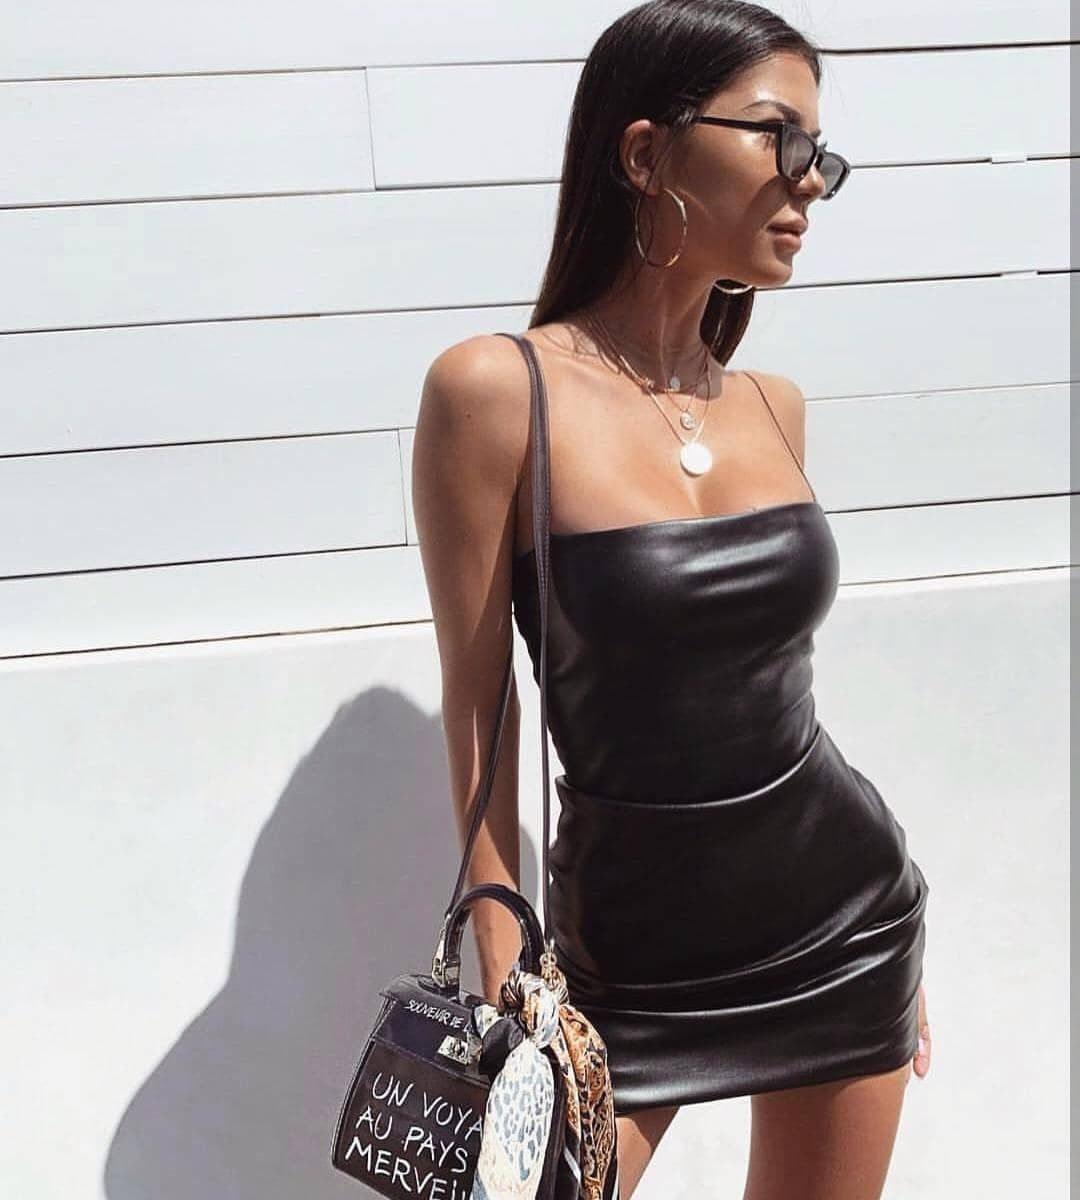 c7db0885c1a Watch the Best YouTube Videos Online - BAHARA HAZIRLIK Feux Leather Mini  İnce Askı Deri İthal